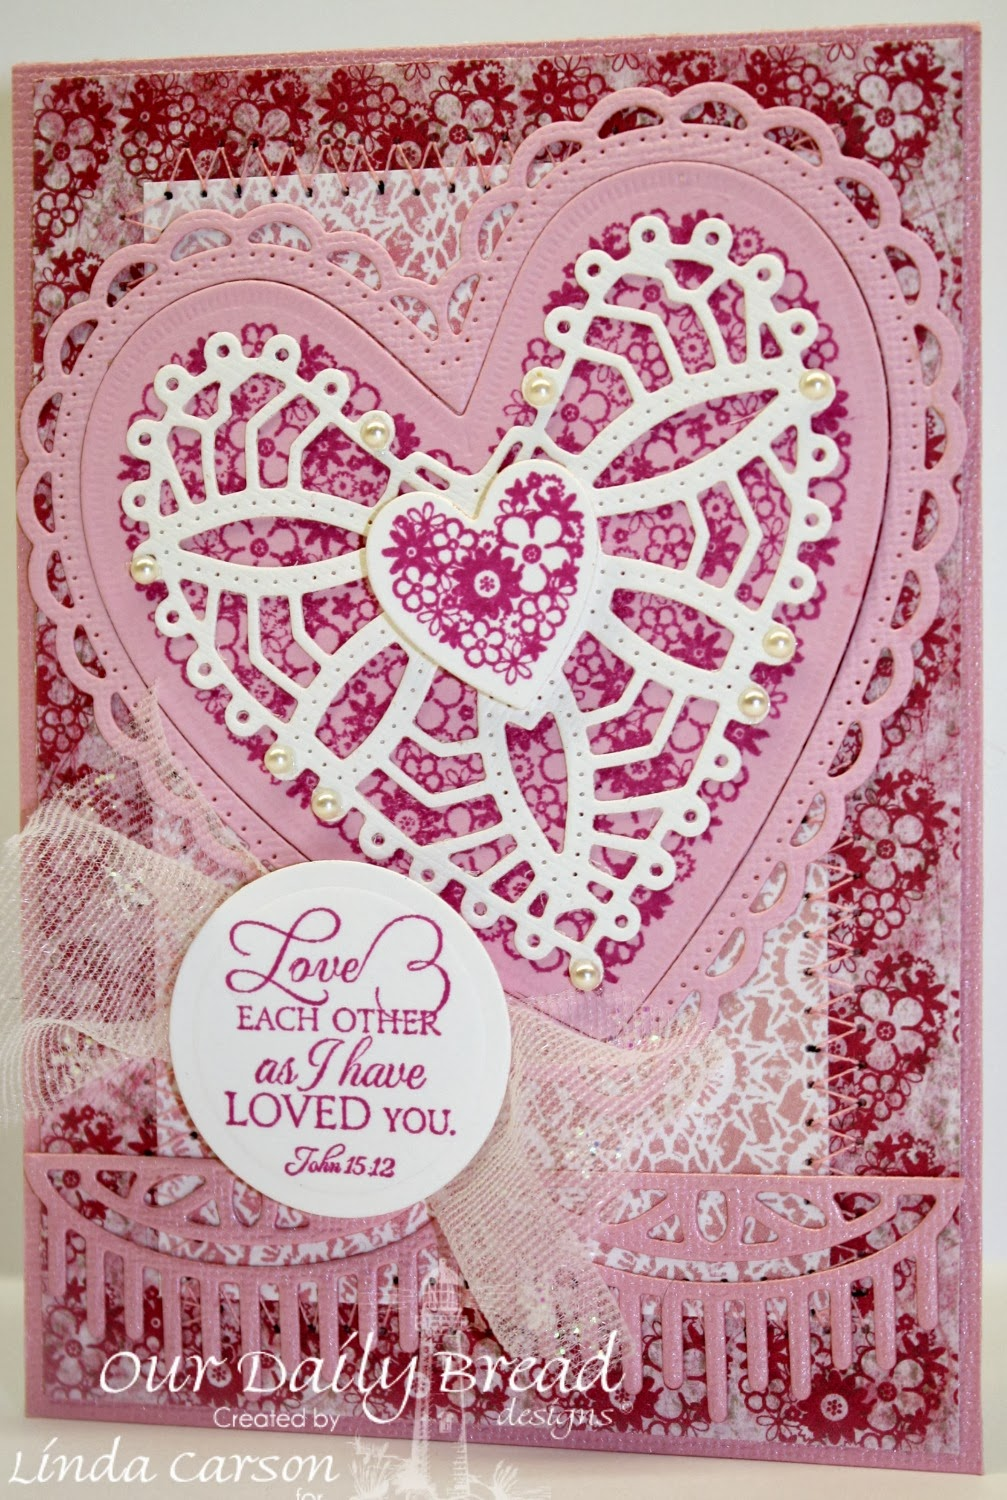 ODBD, Clean Heart, Bless Your Heart, Ornate Hearts die, Beautiful Border die, Heart and Soul Paper Collection, designer Linda Carson